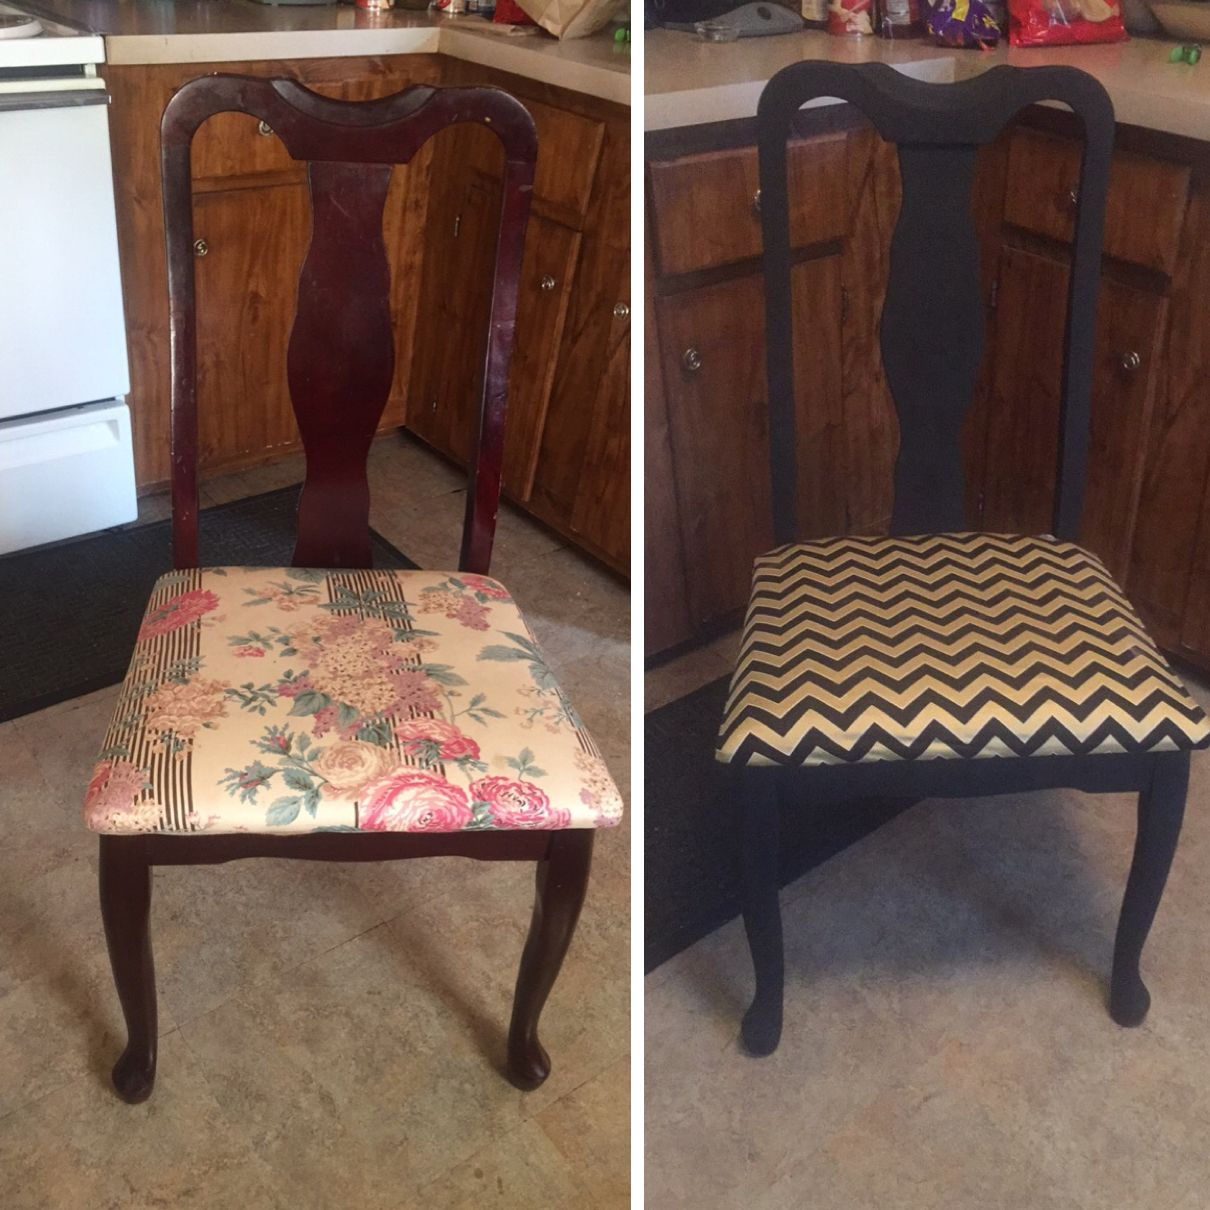 Redone some old kitchen chairs spray painted them matte black and recovered the chairs with new fabric